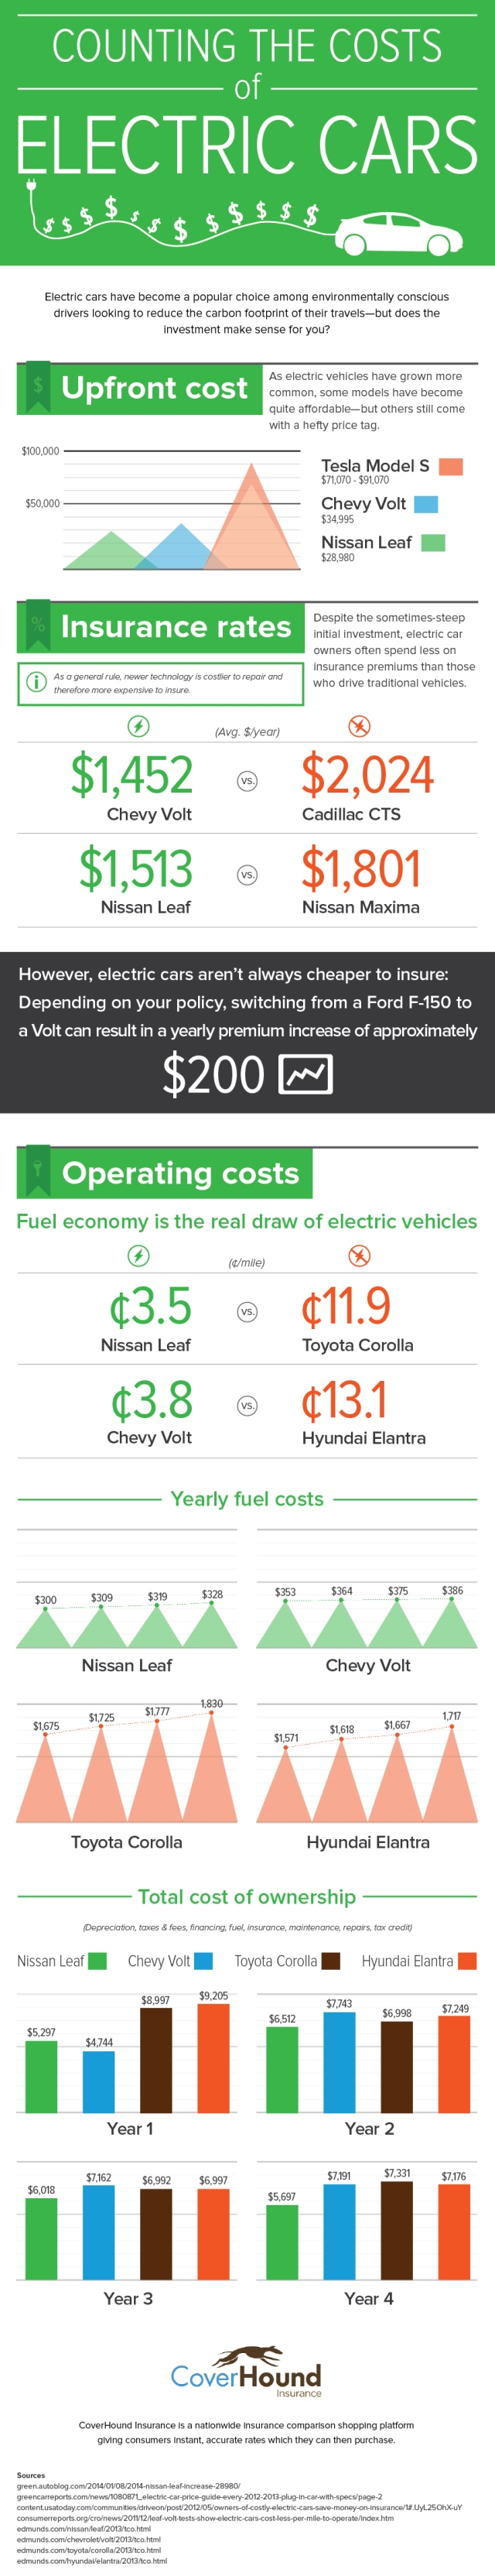 costs-Electric-Cars